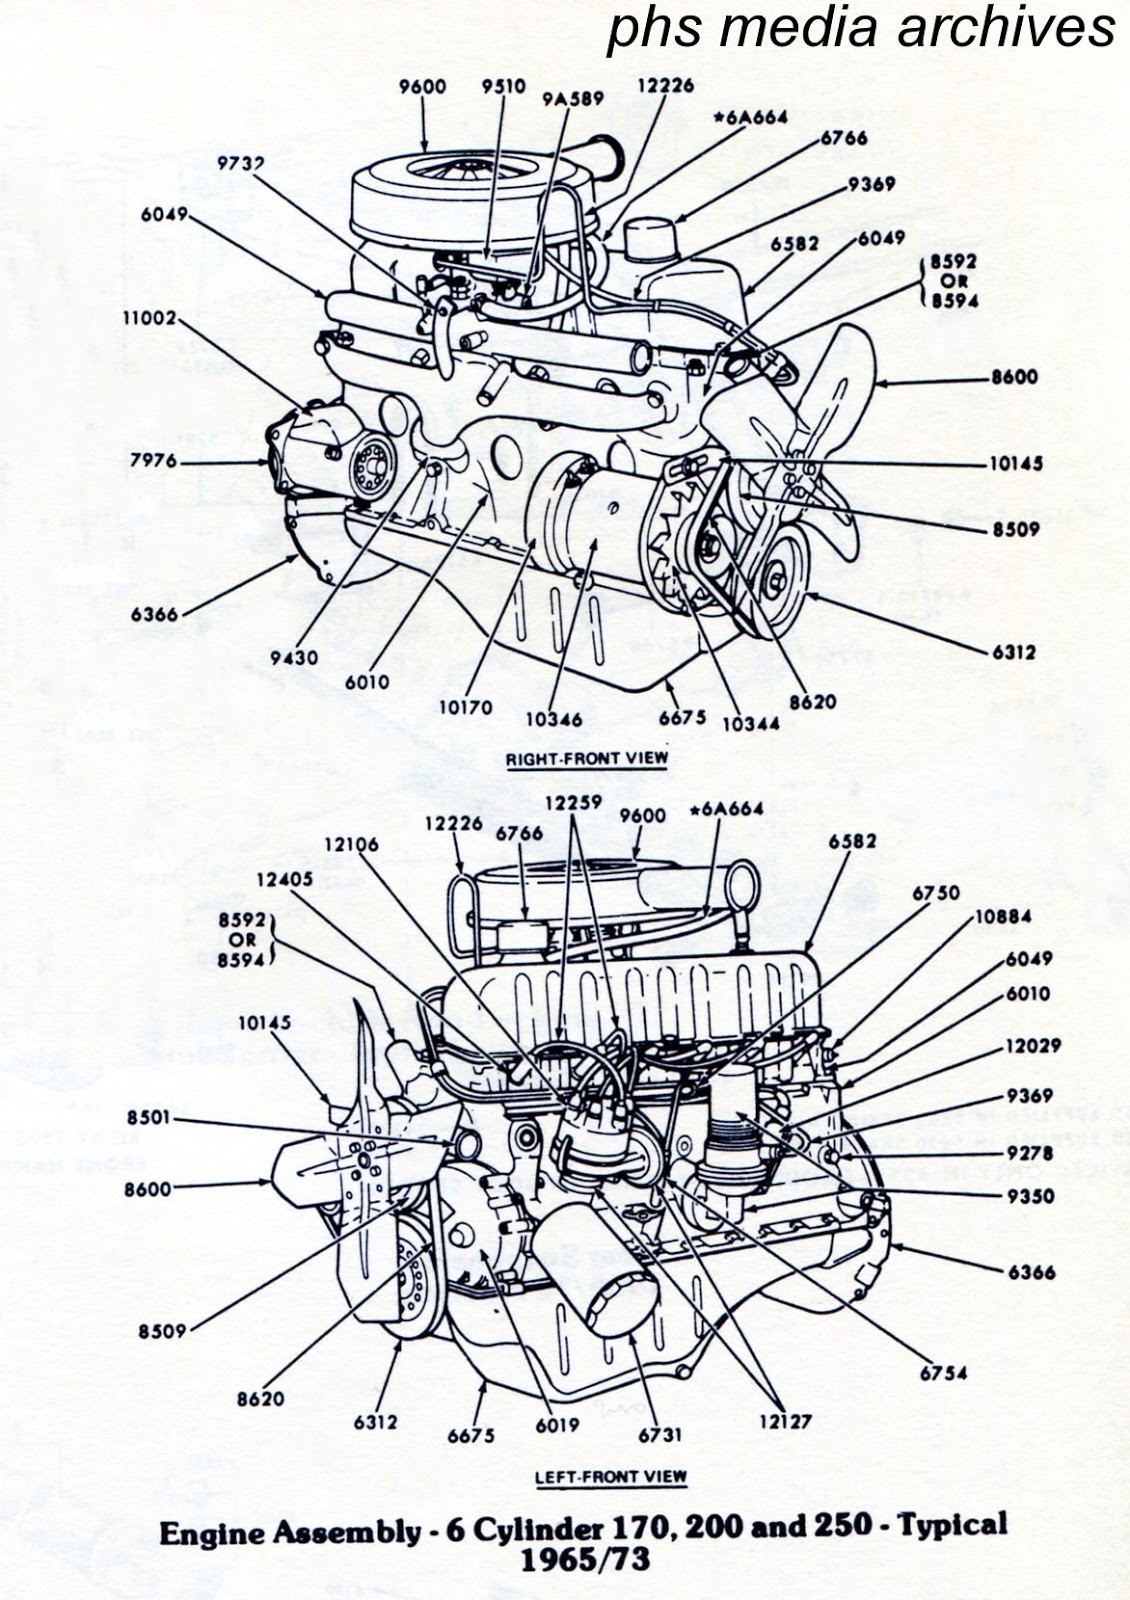 hight resolution of the straight six engine changed in displacement over the years to become a 250 by 1971